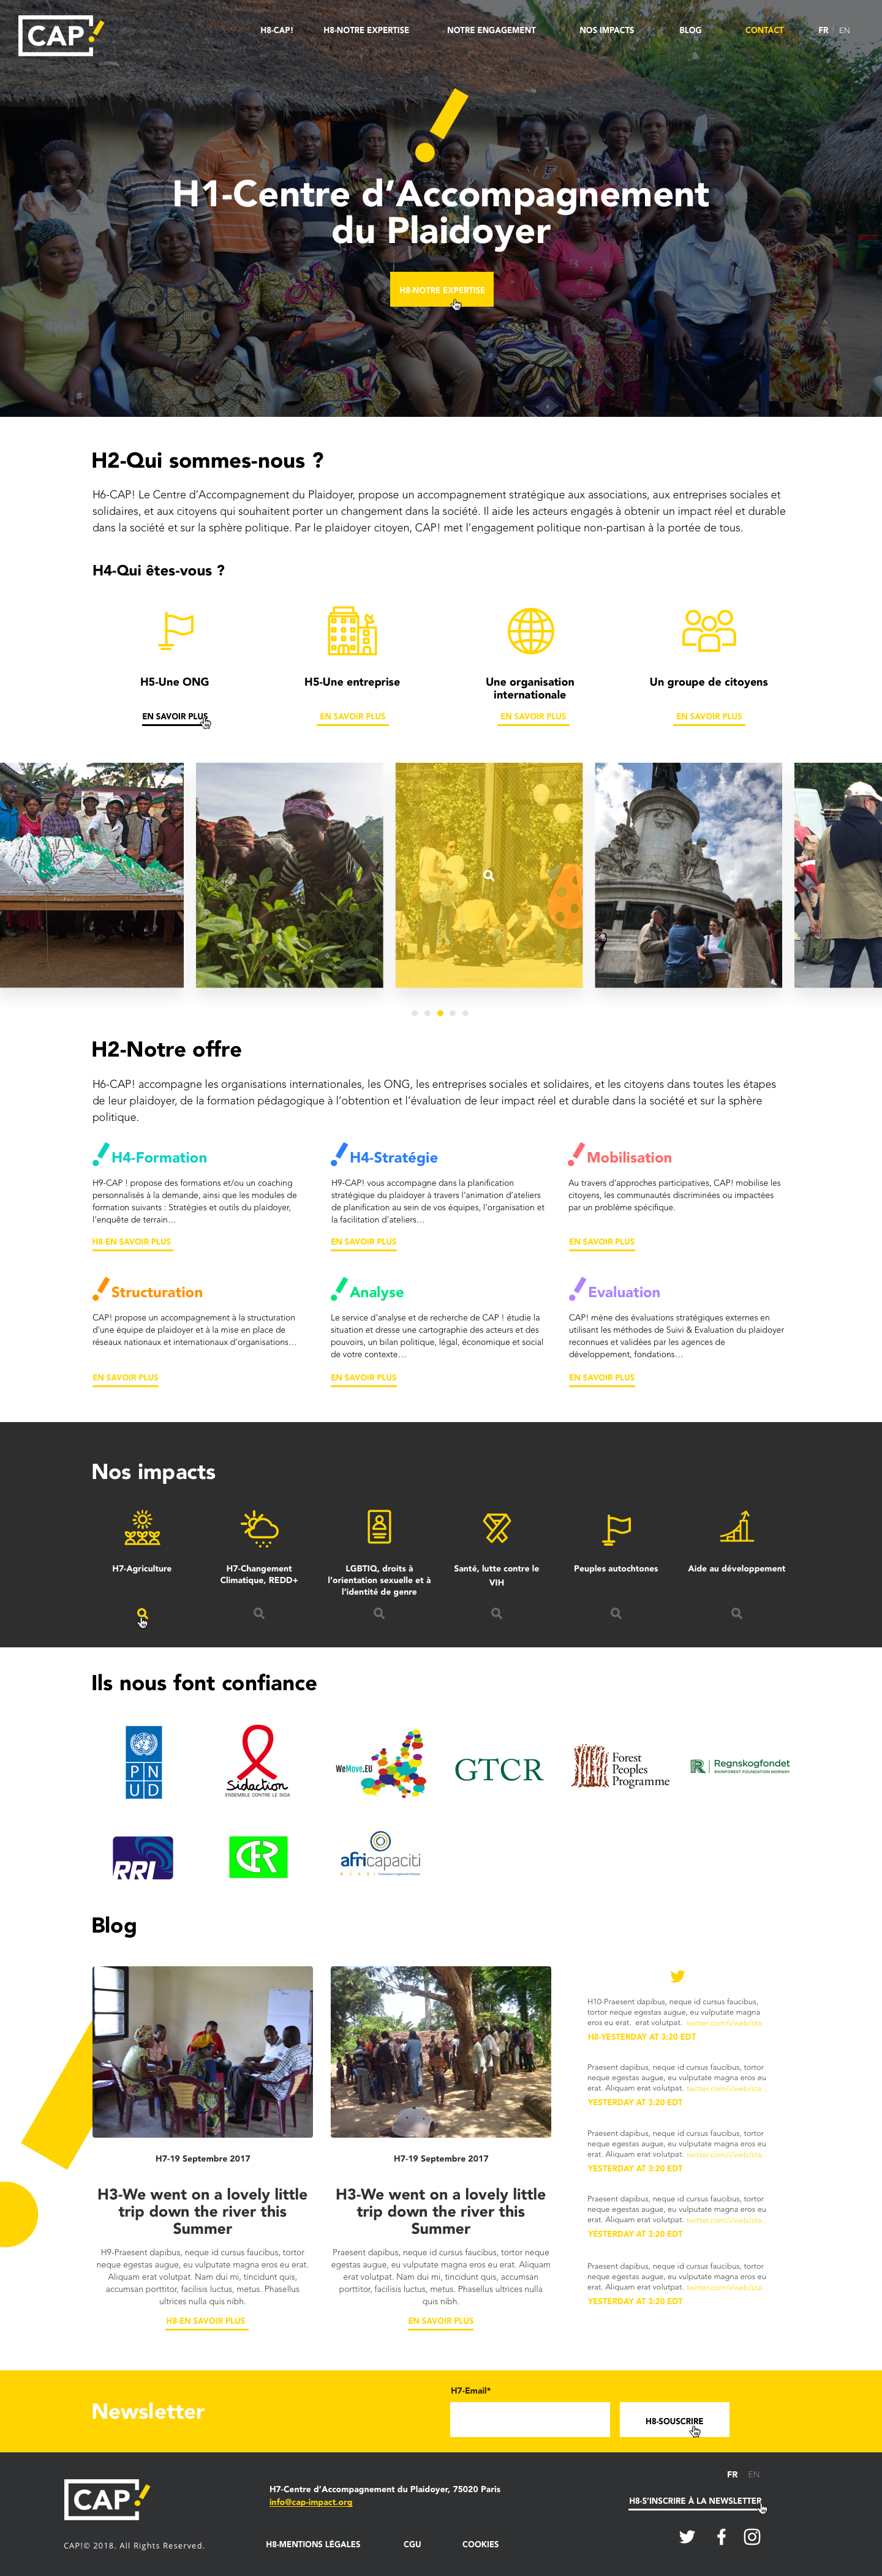 homepage_hover.png